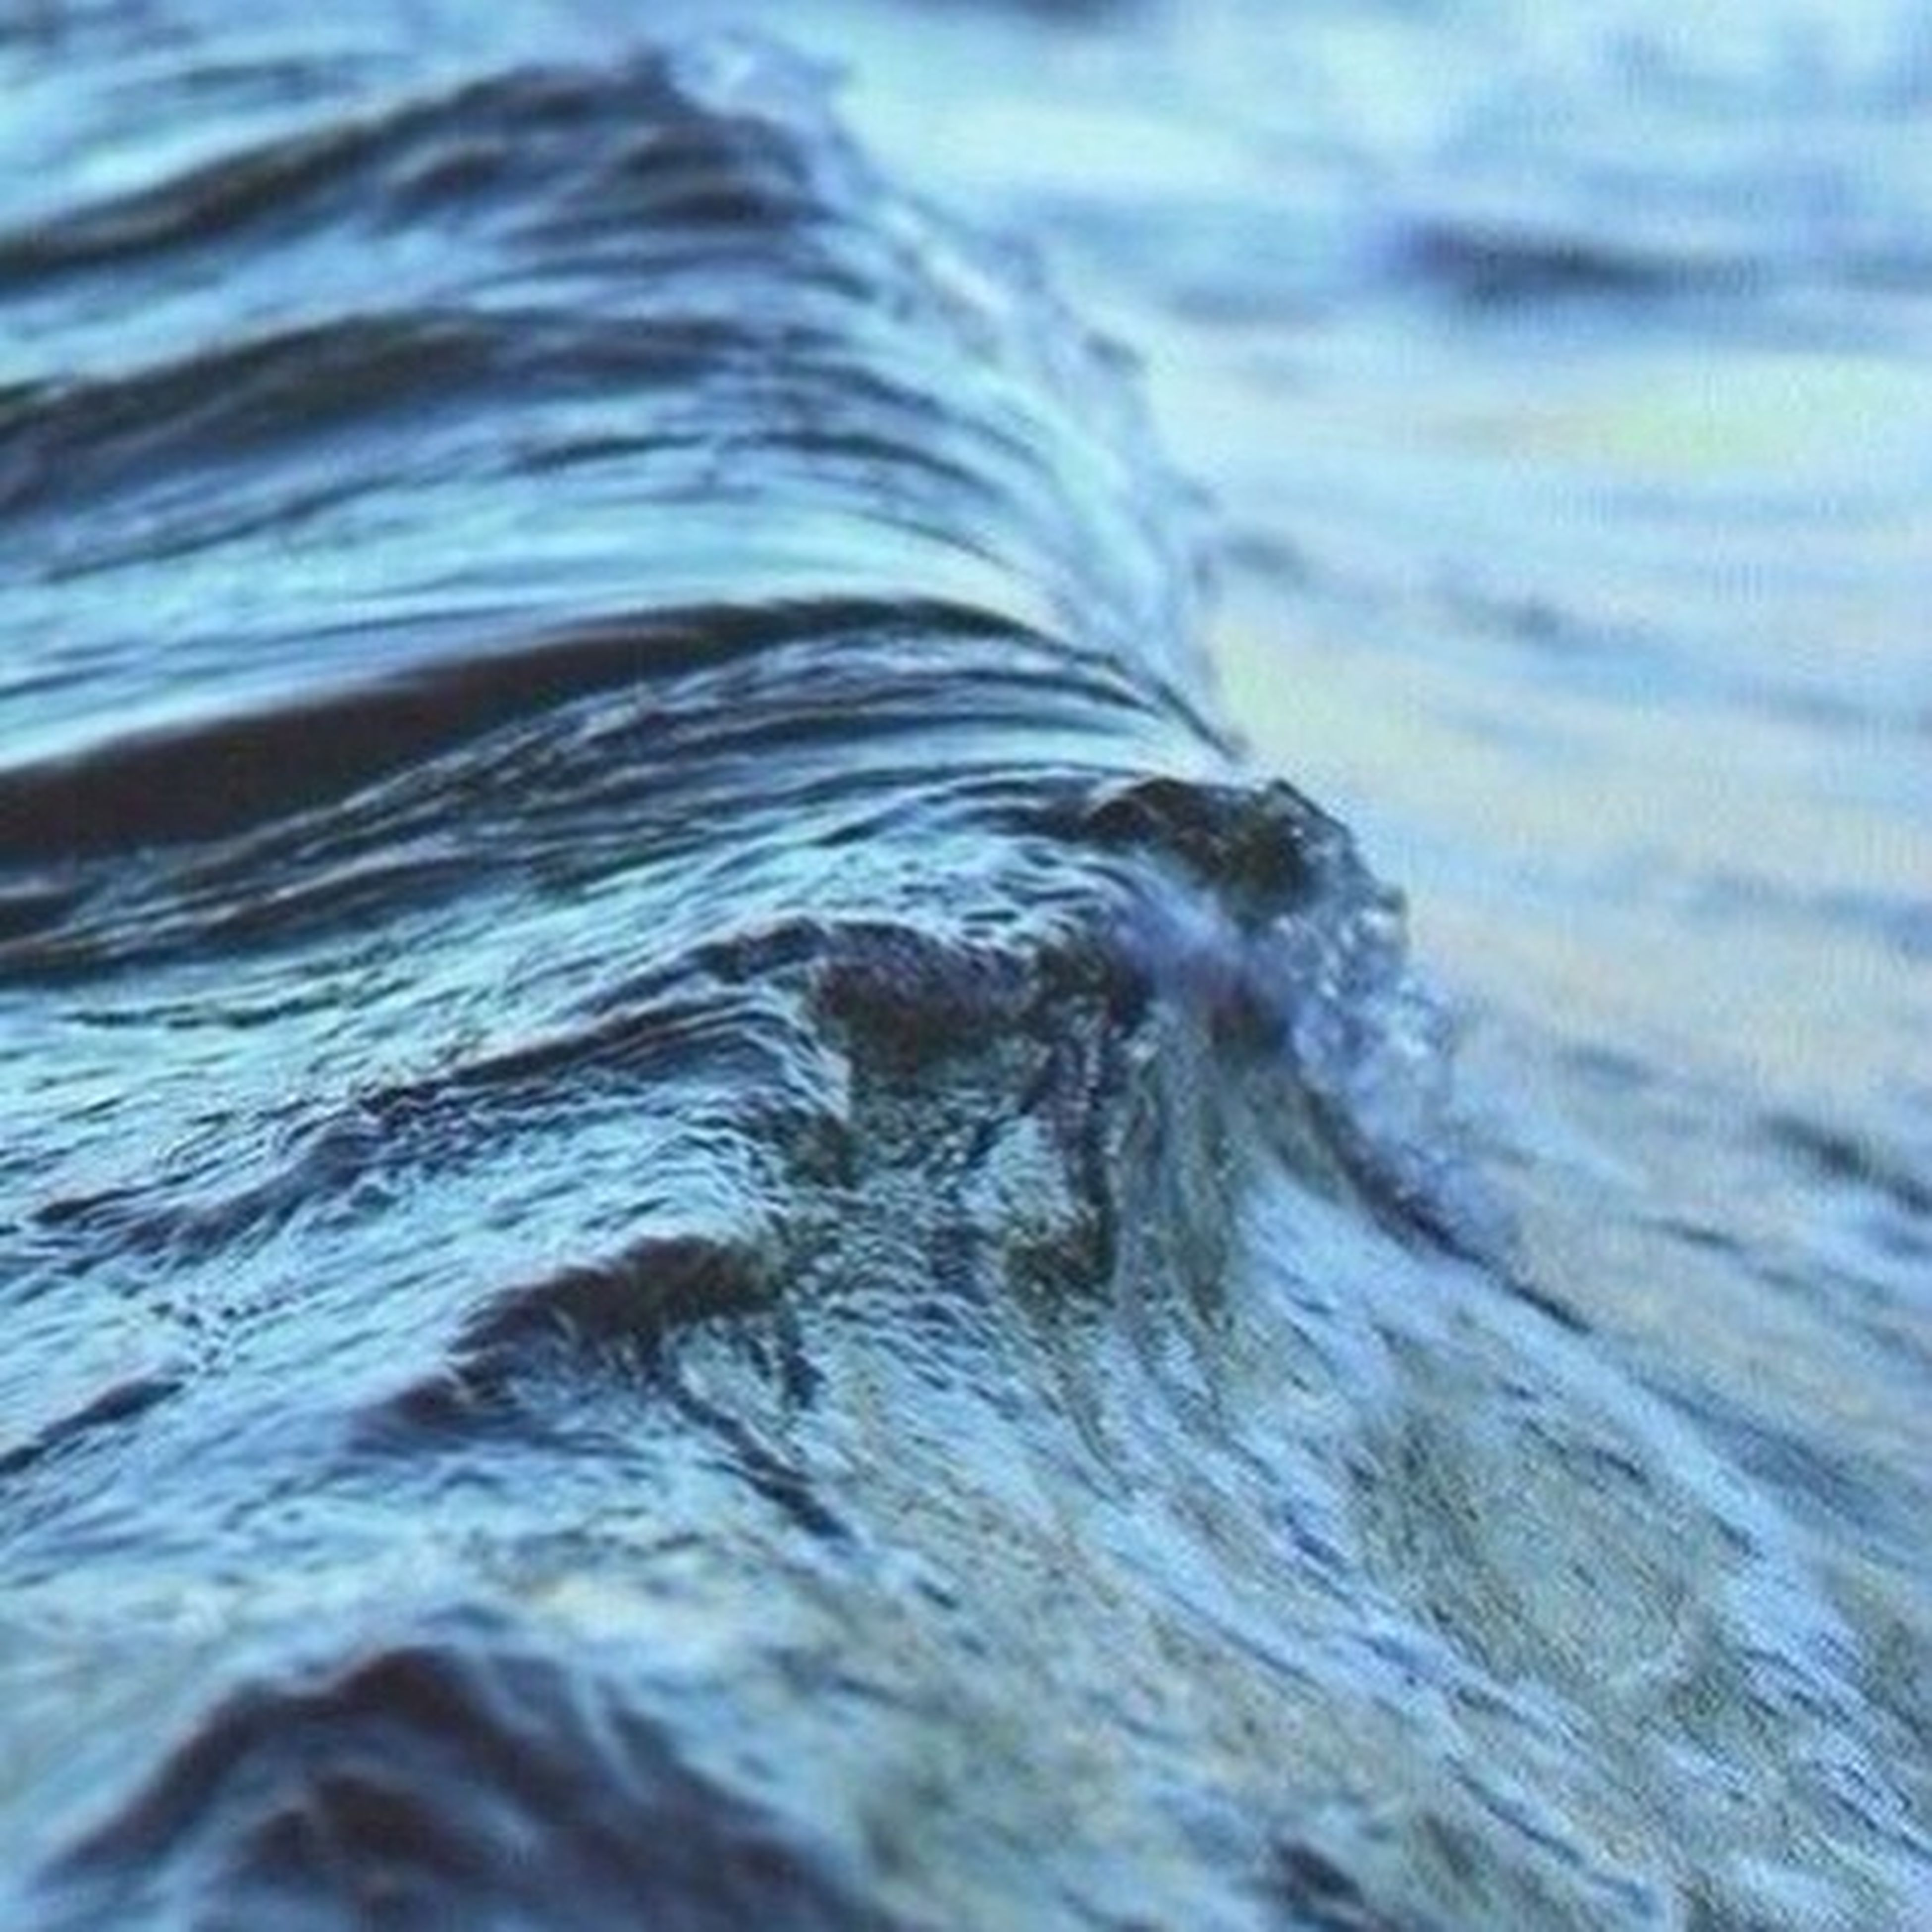 water, waterfront, sea, rippled, one animal, wave, motion, nature, animal themes, splashing, beauty in nature, close-up, day, swimming, selective focus, outdoors, no people, water surface, surf, tranquility